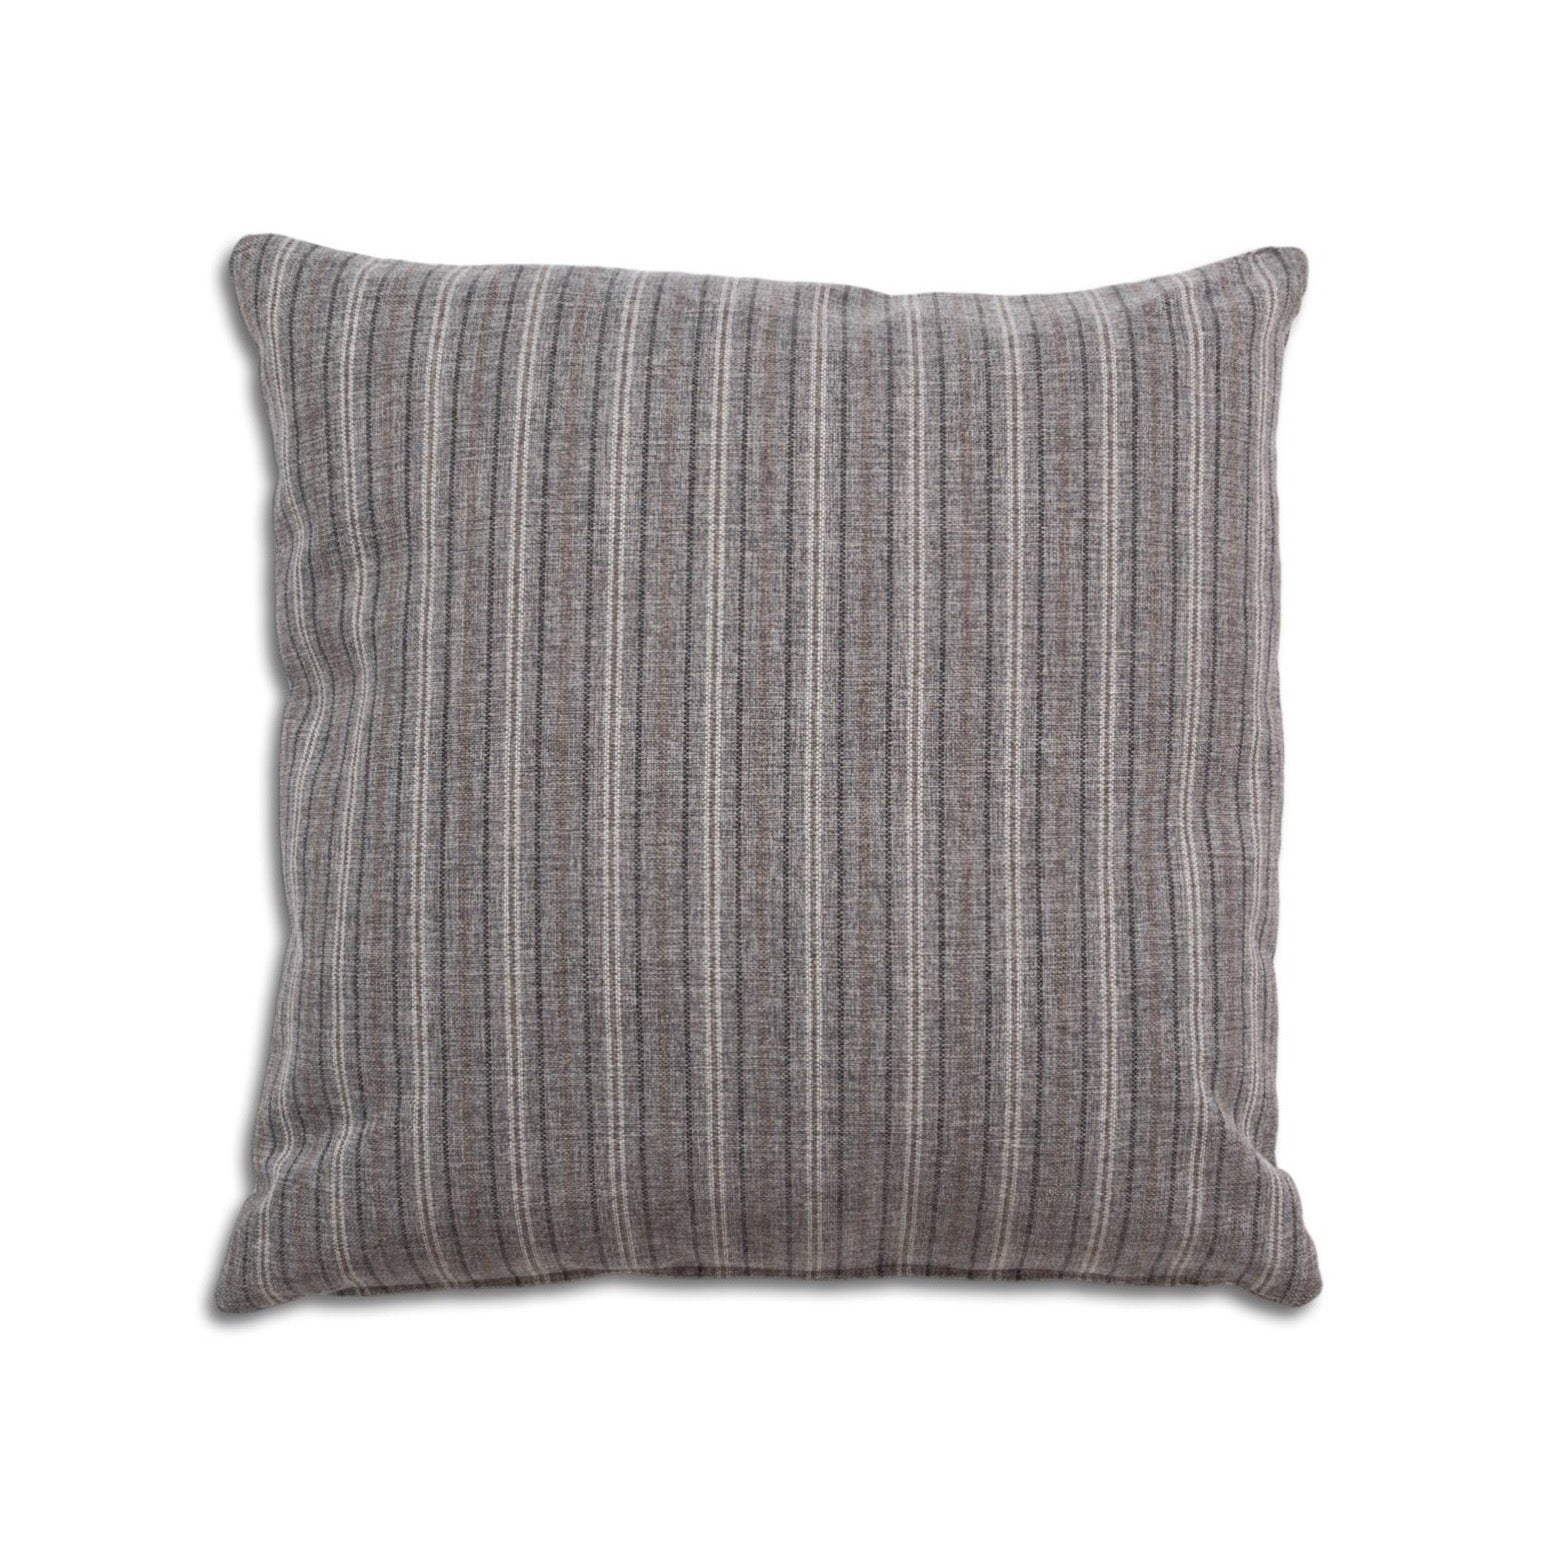 "Breathe 22"" Square Feather Cushion - Grey Stripe"